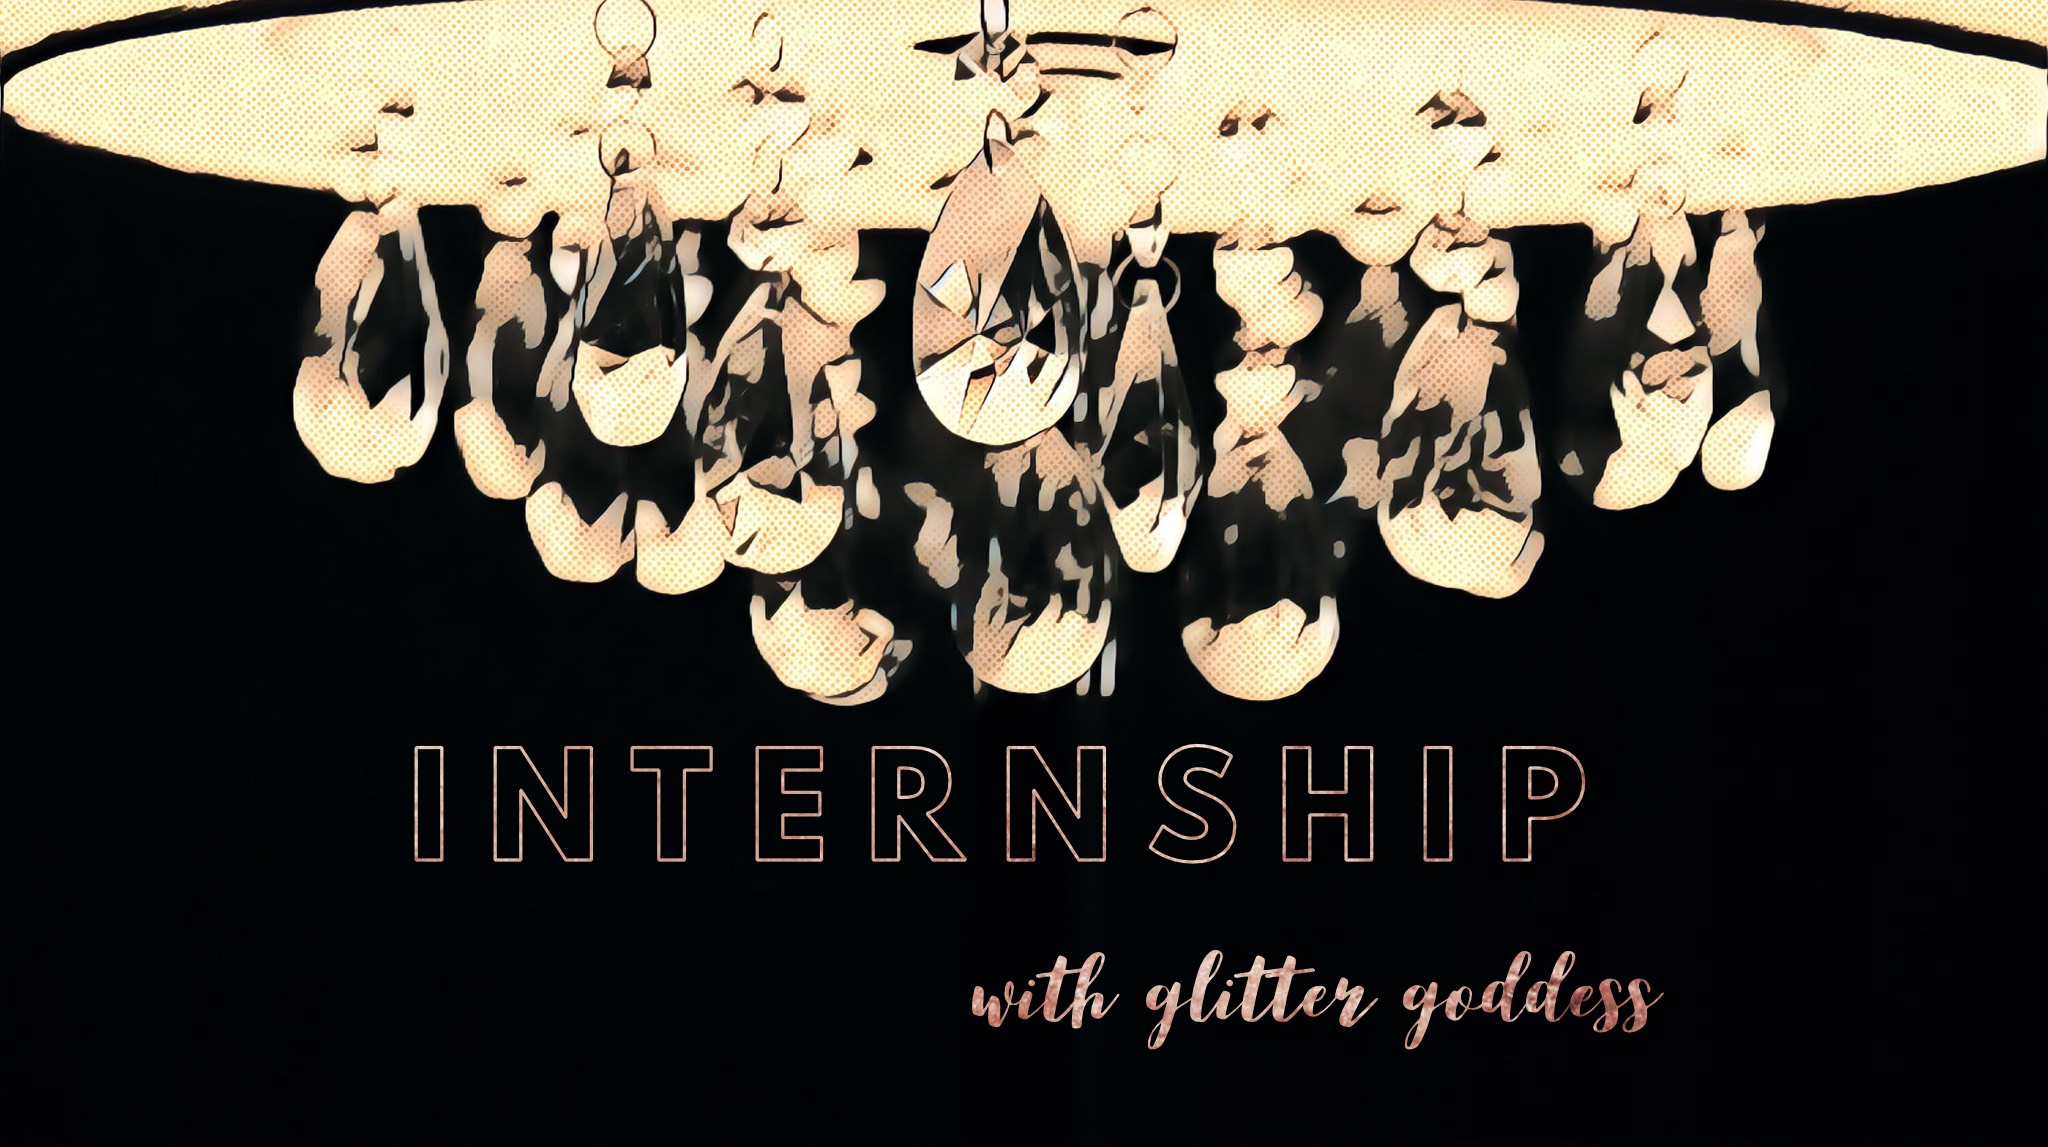 Internship with Glitter Goddess